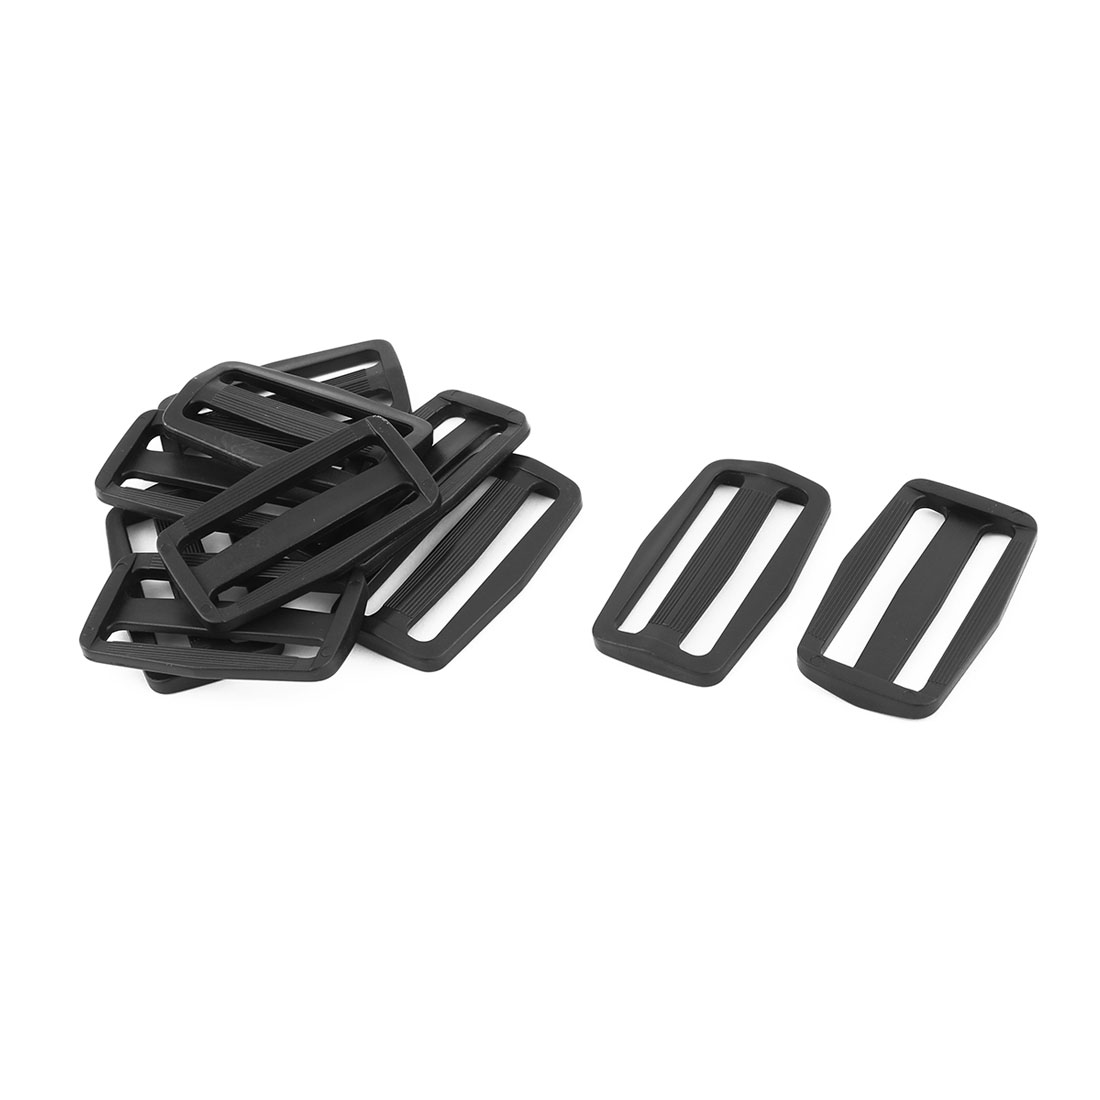 Outdoor Plastic Adjustable Backpack Strap Tri Glide Buckle Black 2.3 Inches Length 10pcs